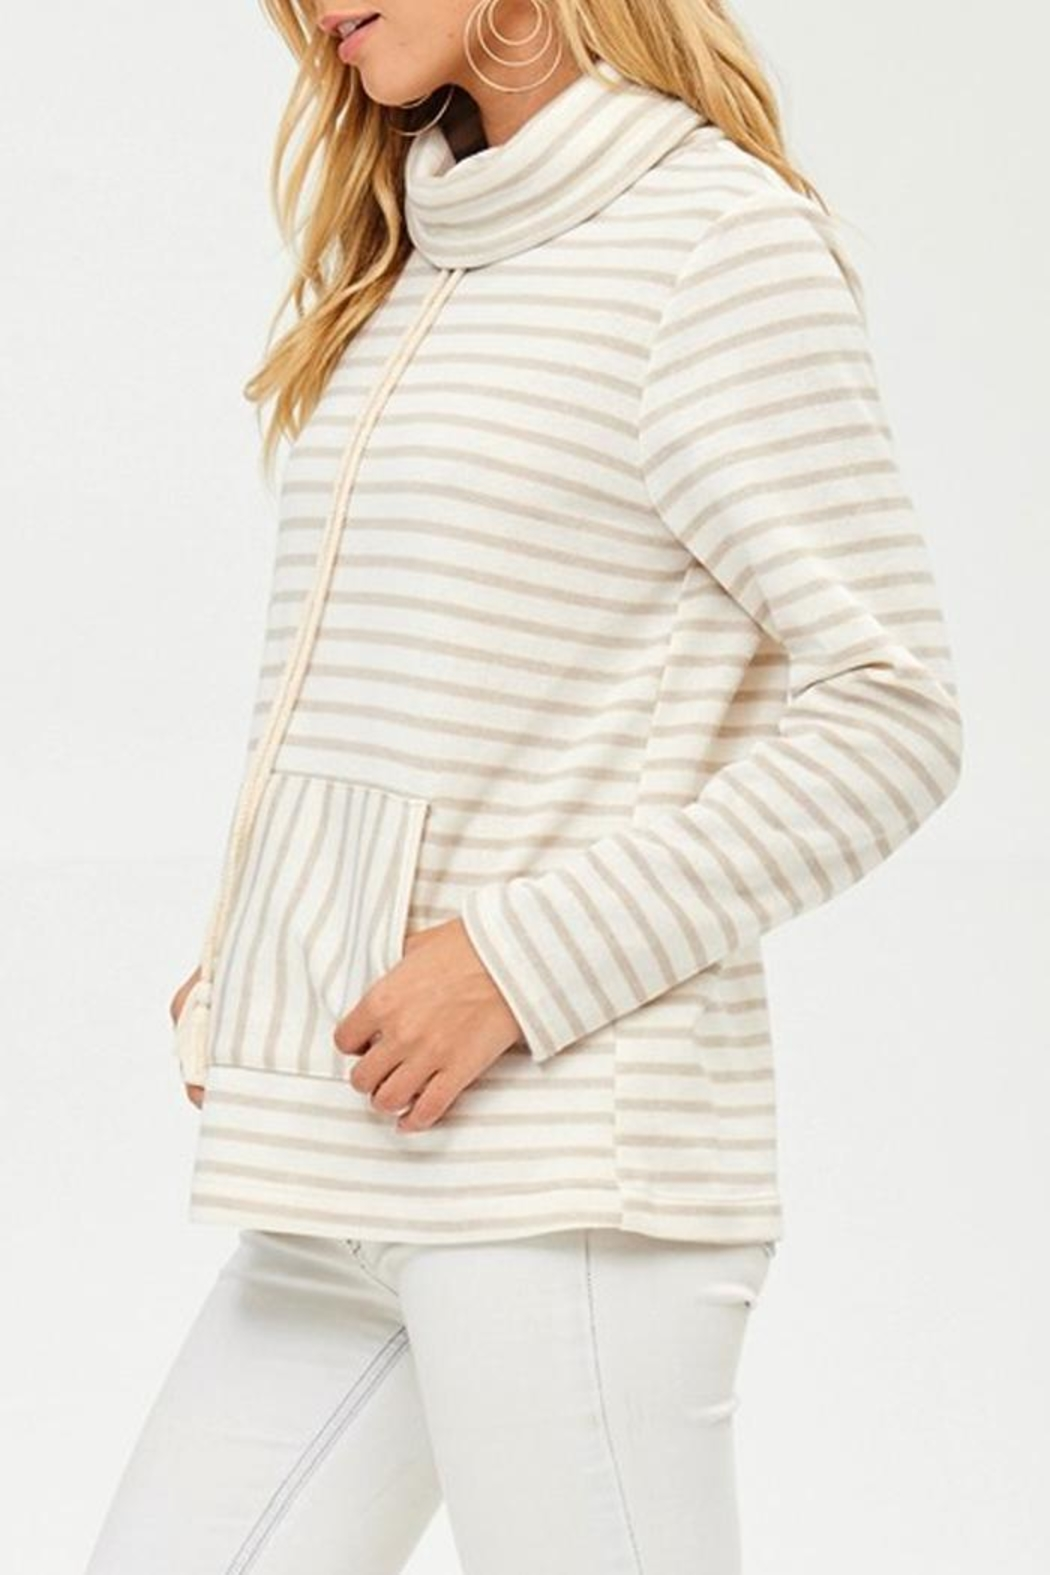 Hailey & Co Winter White Sweatshirt - Front Full Image